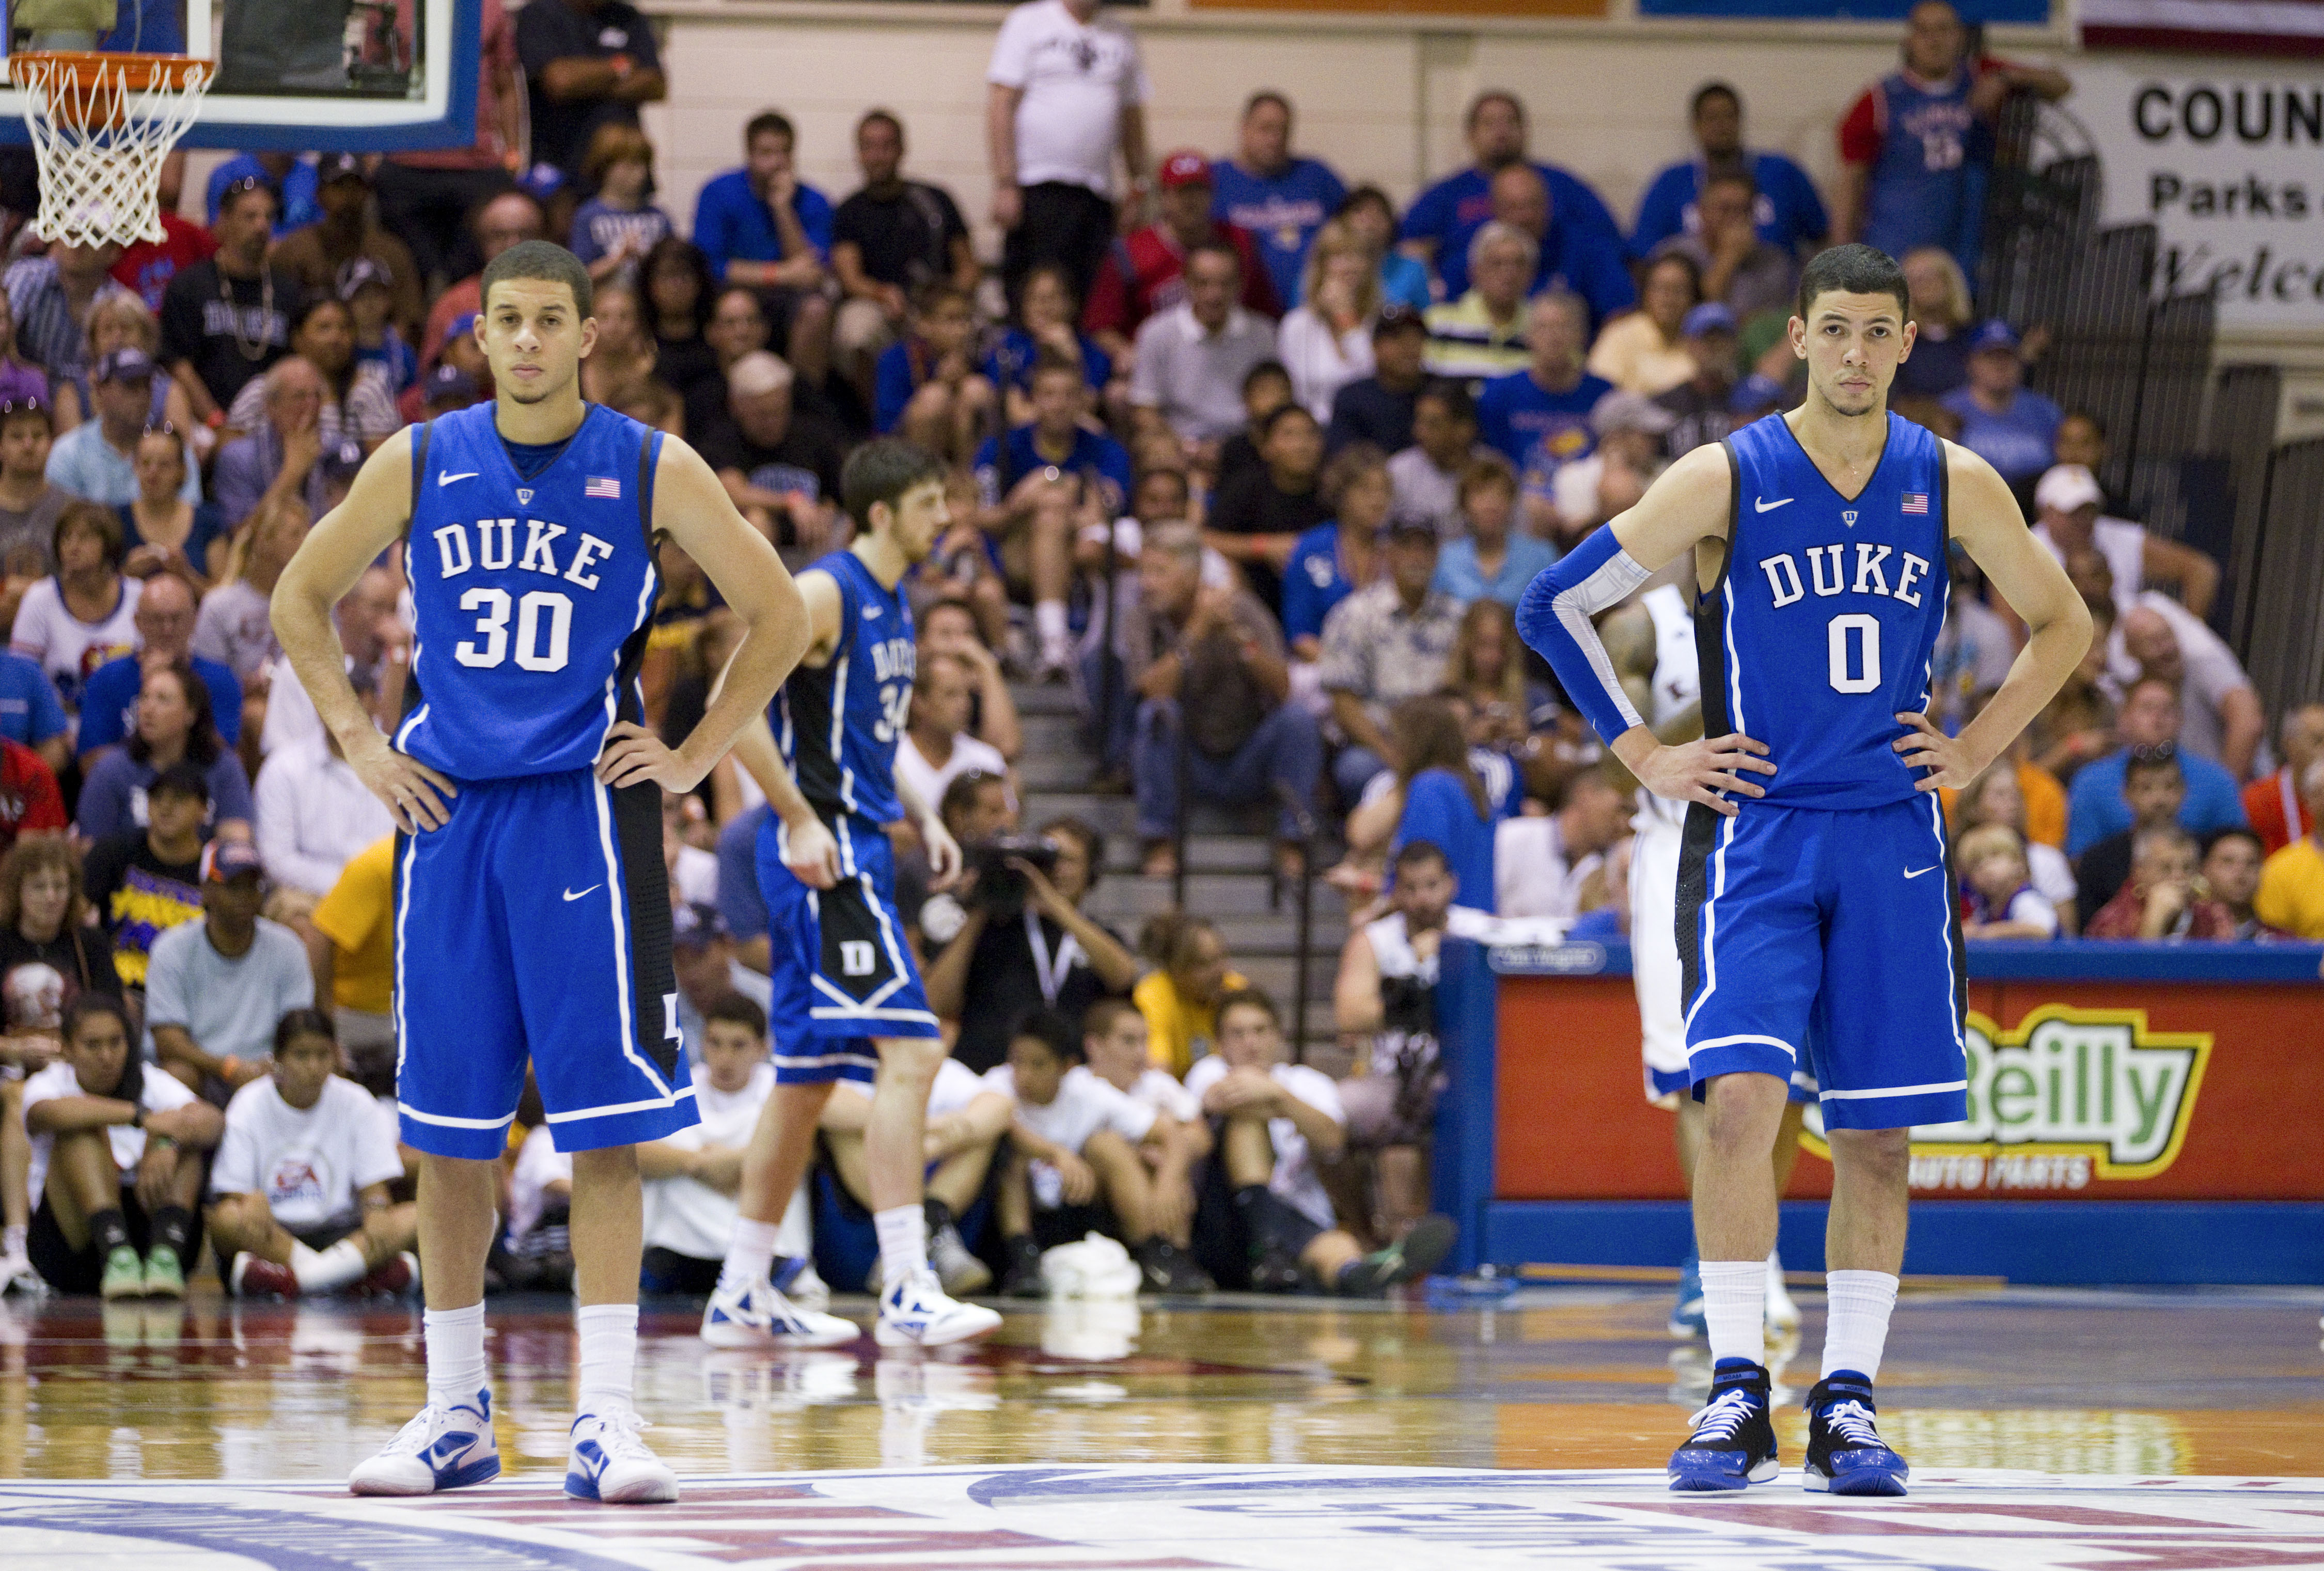 2868cdaaf380 Duke guard Seth Curry (left) and guard Austin Rivers (right) wait for the  start of play after a timeout in the first half of an NCAA college  basketball game ...